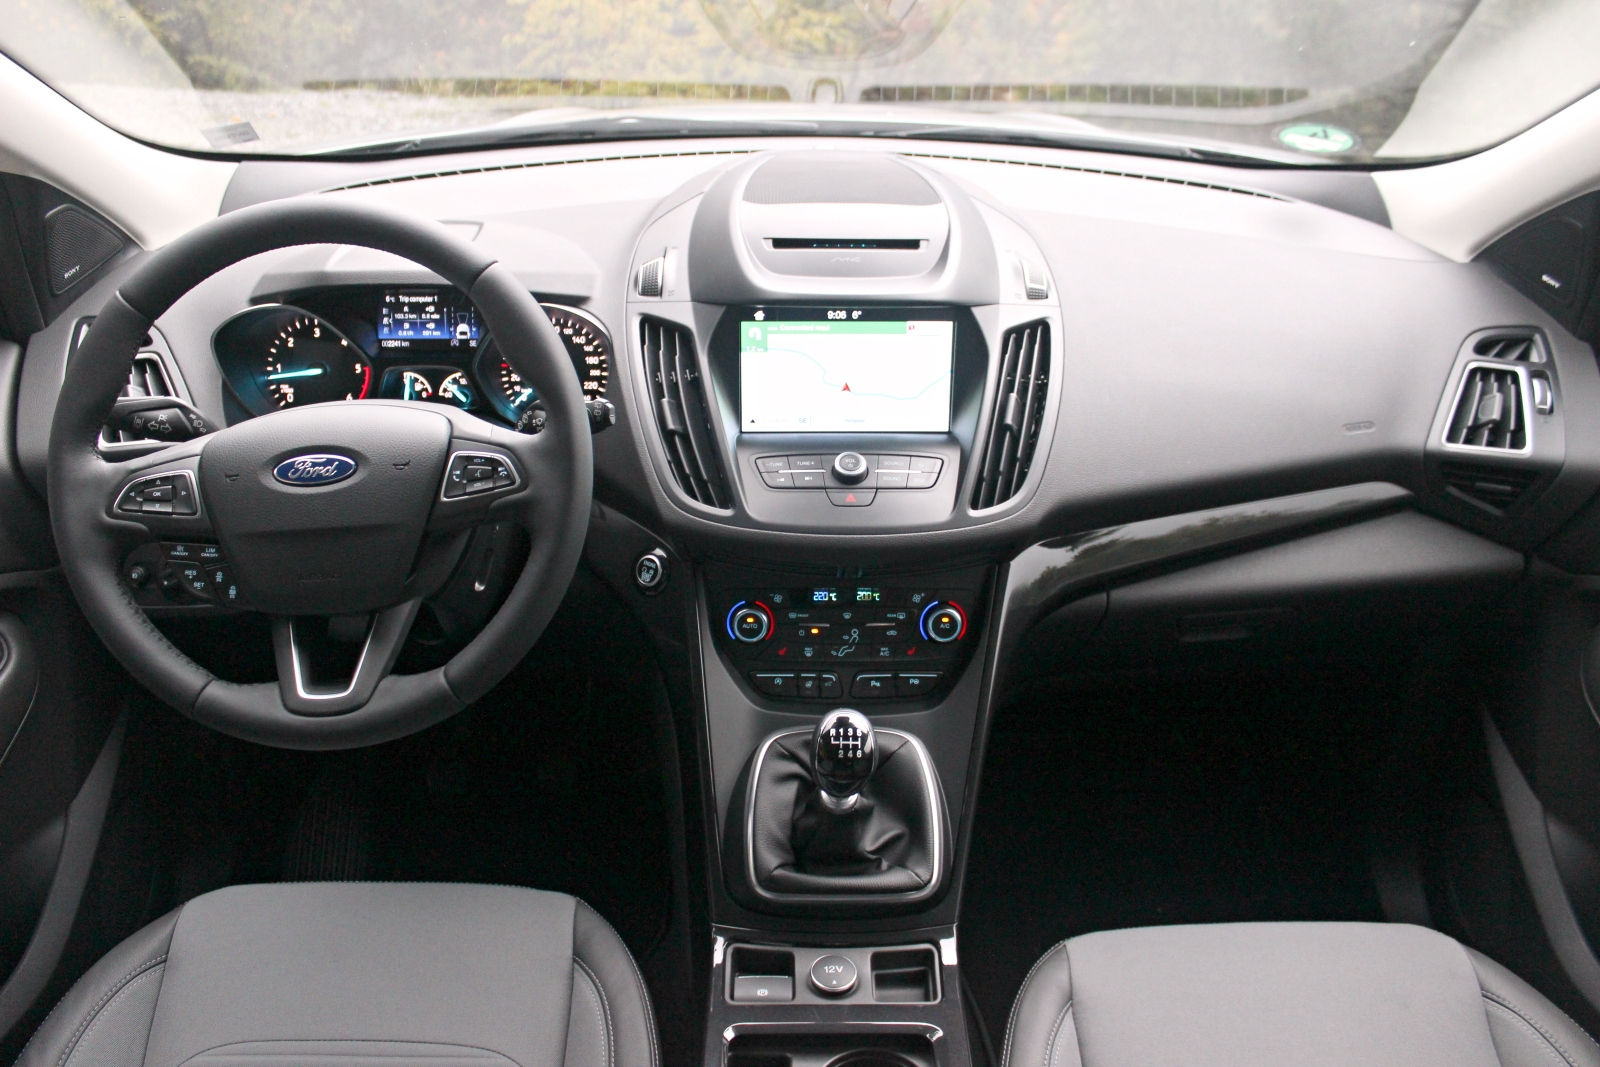 Essai vid o ford kuga restyl 2016 un lourd h ritage for Interieur ford kuga